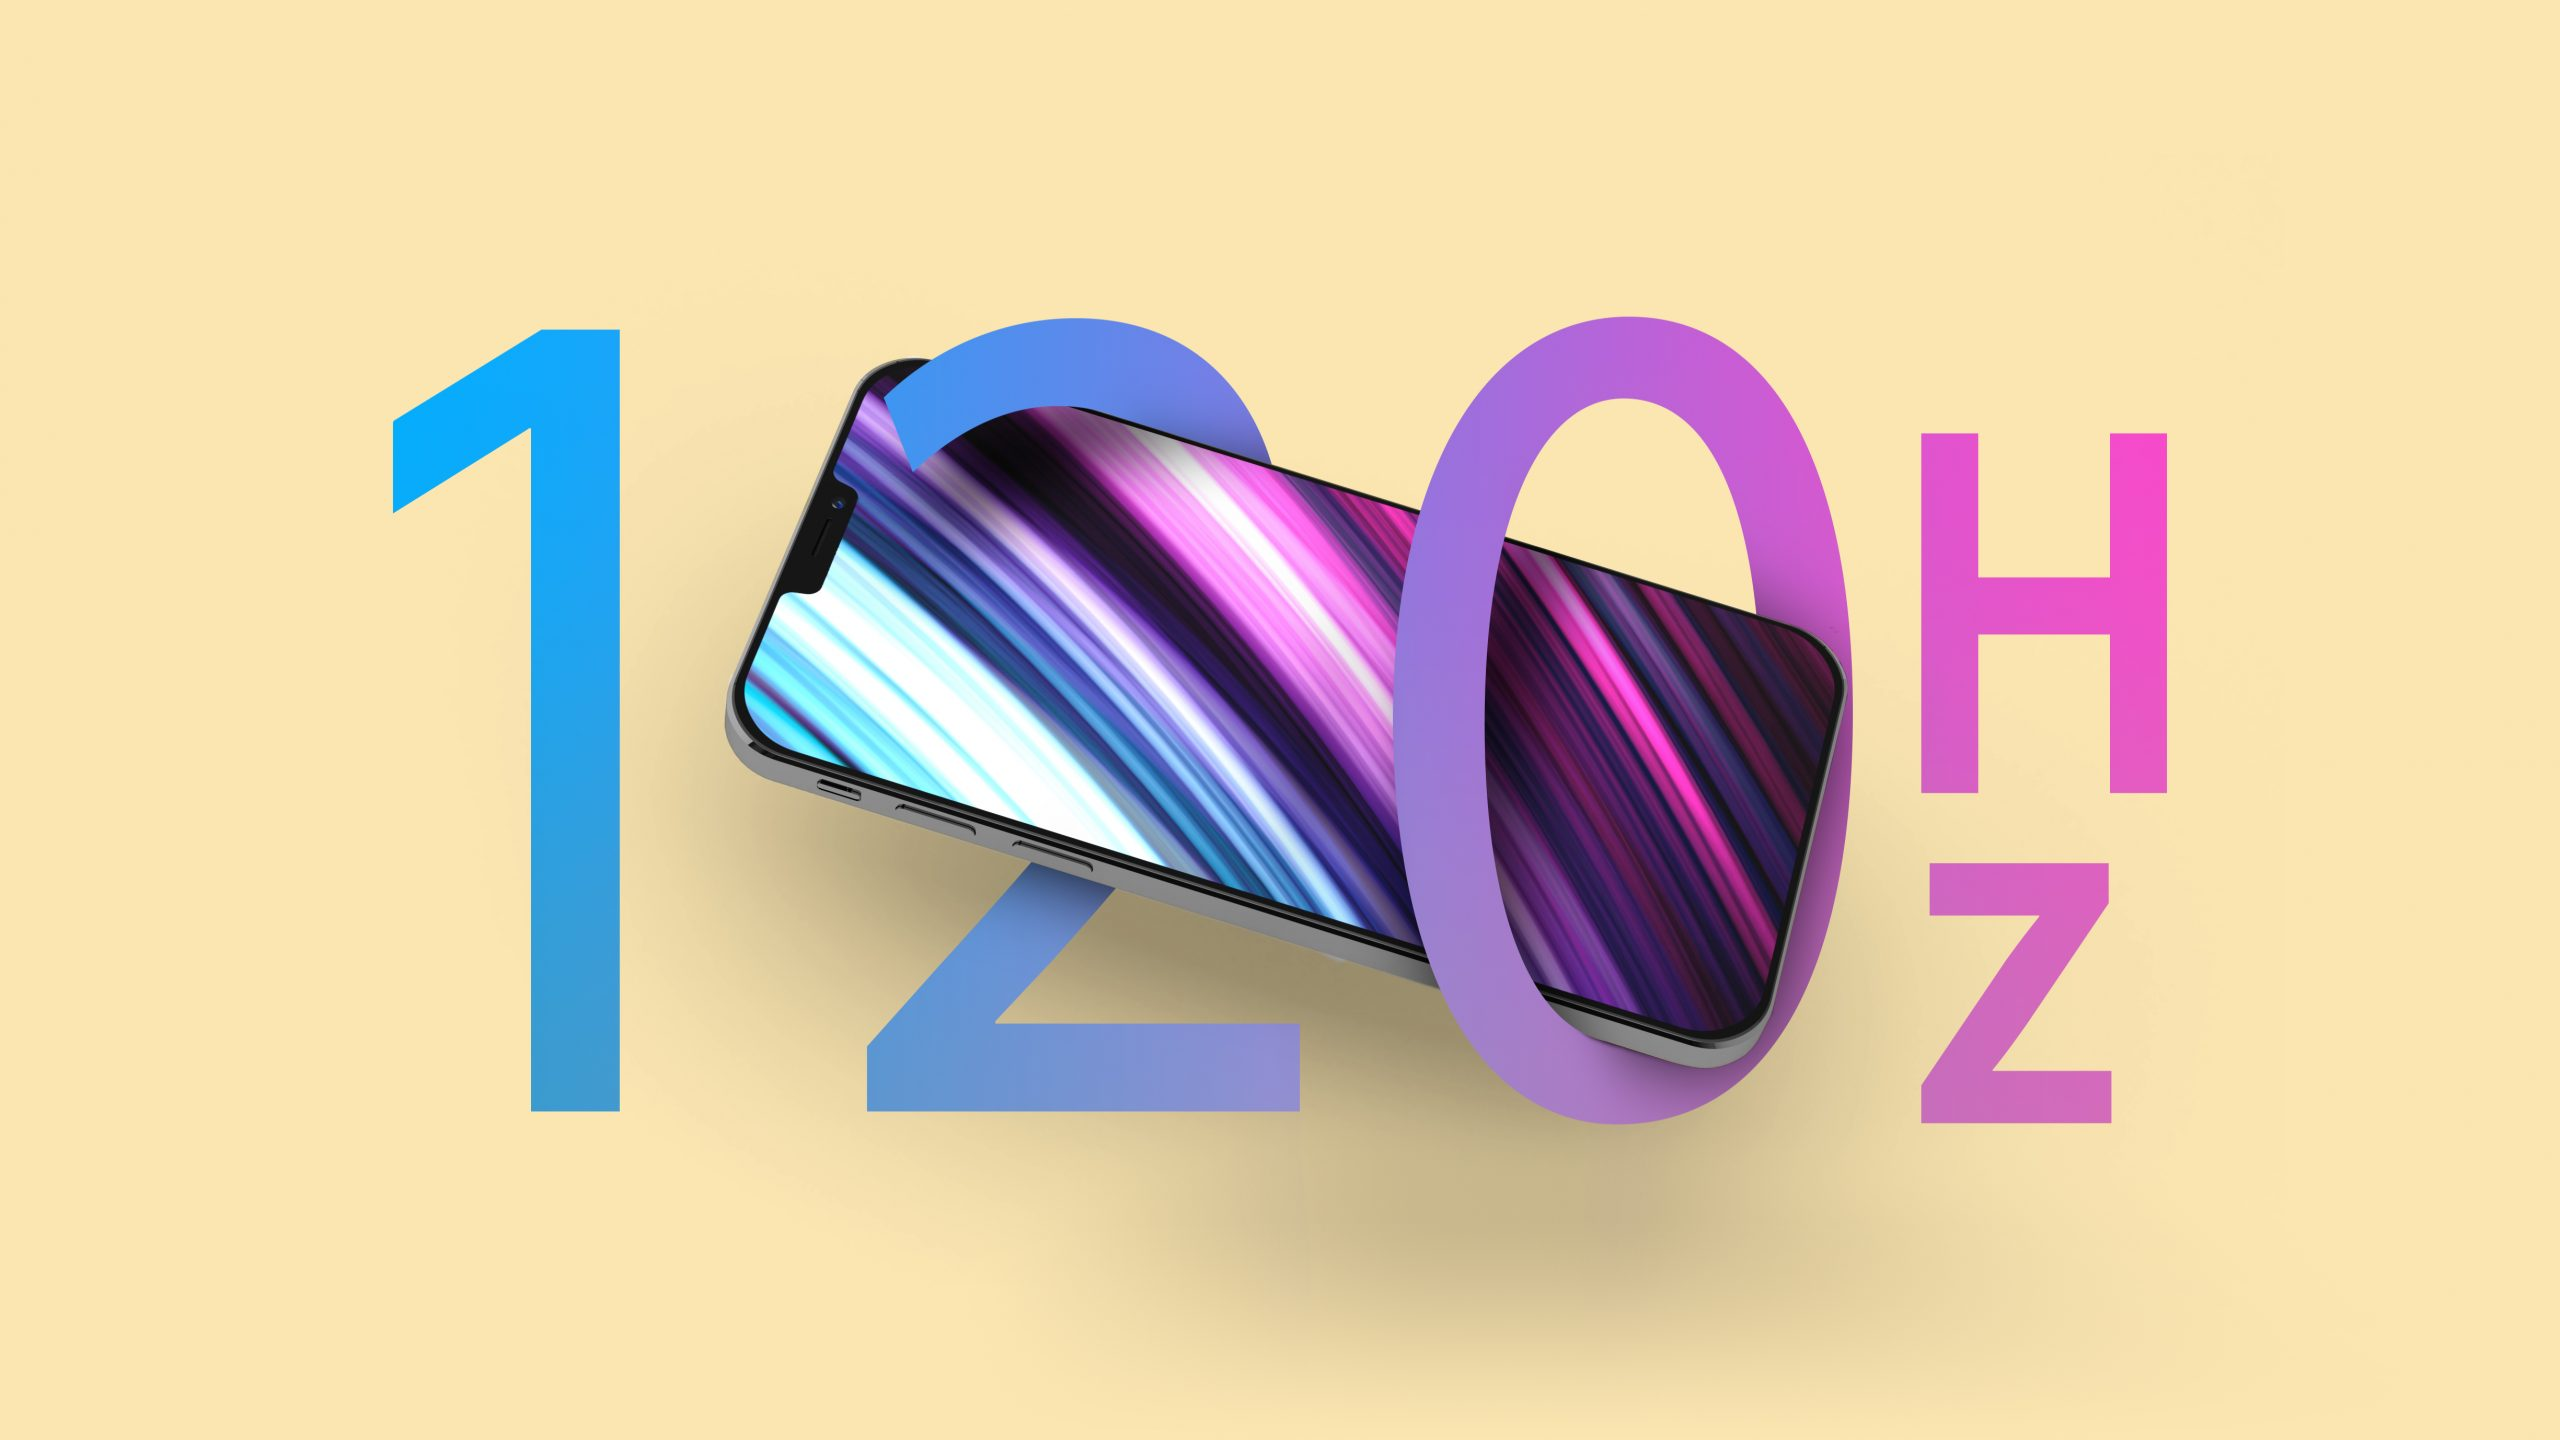 iphone-12-120hz-thumbnail-feature-1-scaled.jpg